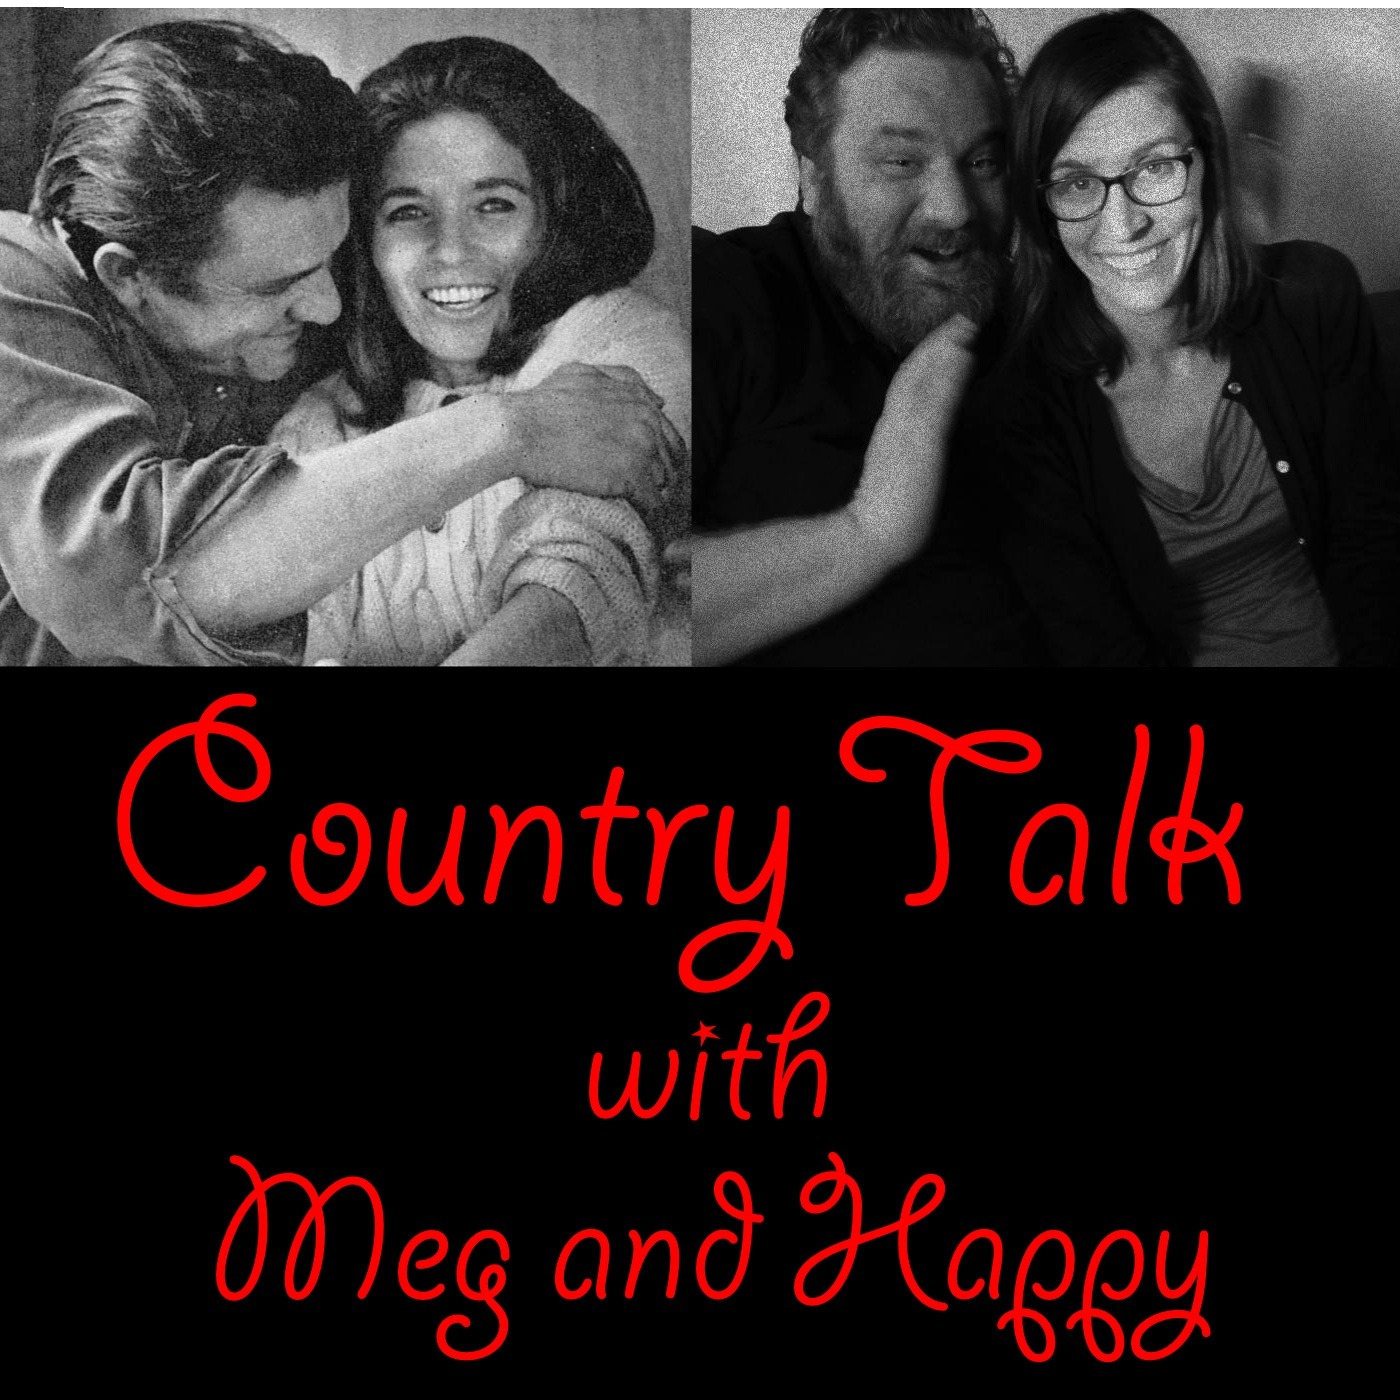 Country Talk with Meg and Happy